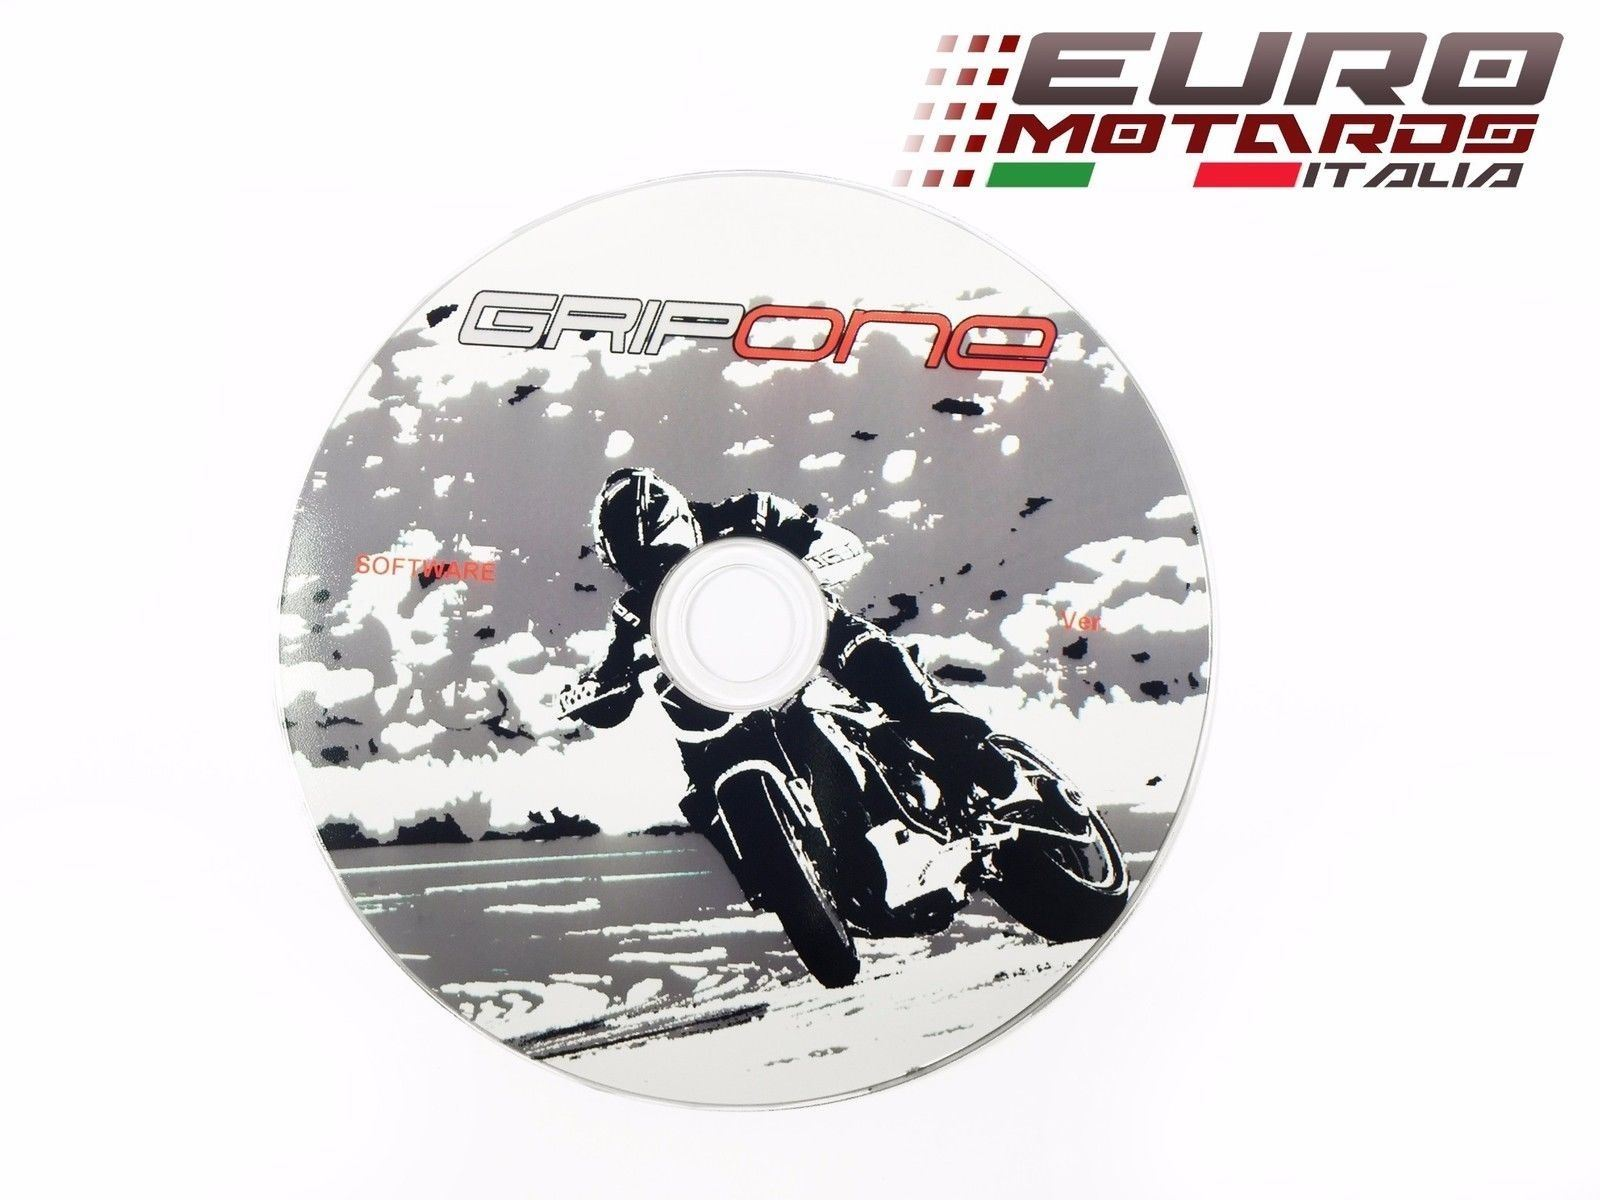 Ducati Monster 600 800 900 1000 Gripone S4 Traction Control Anti